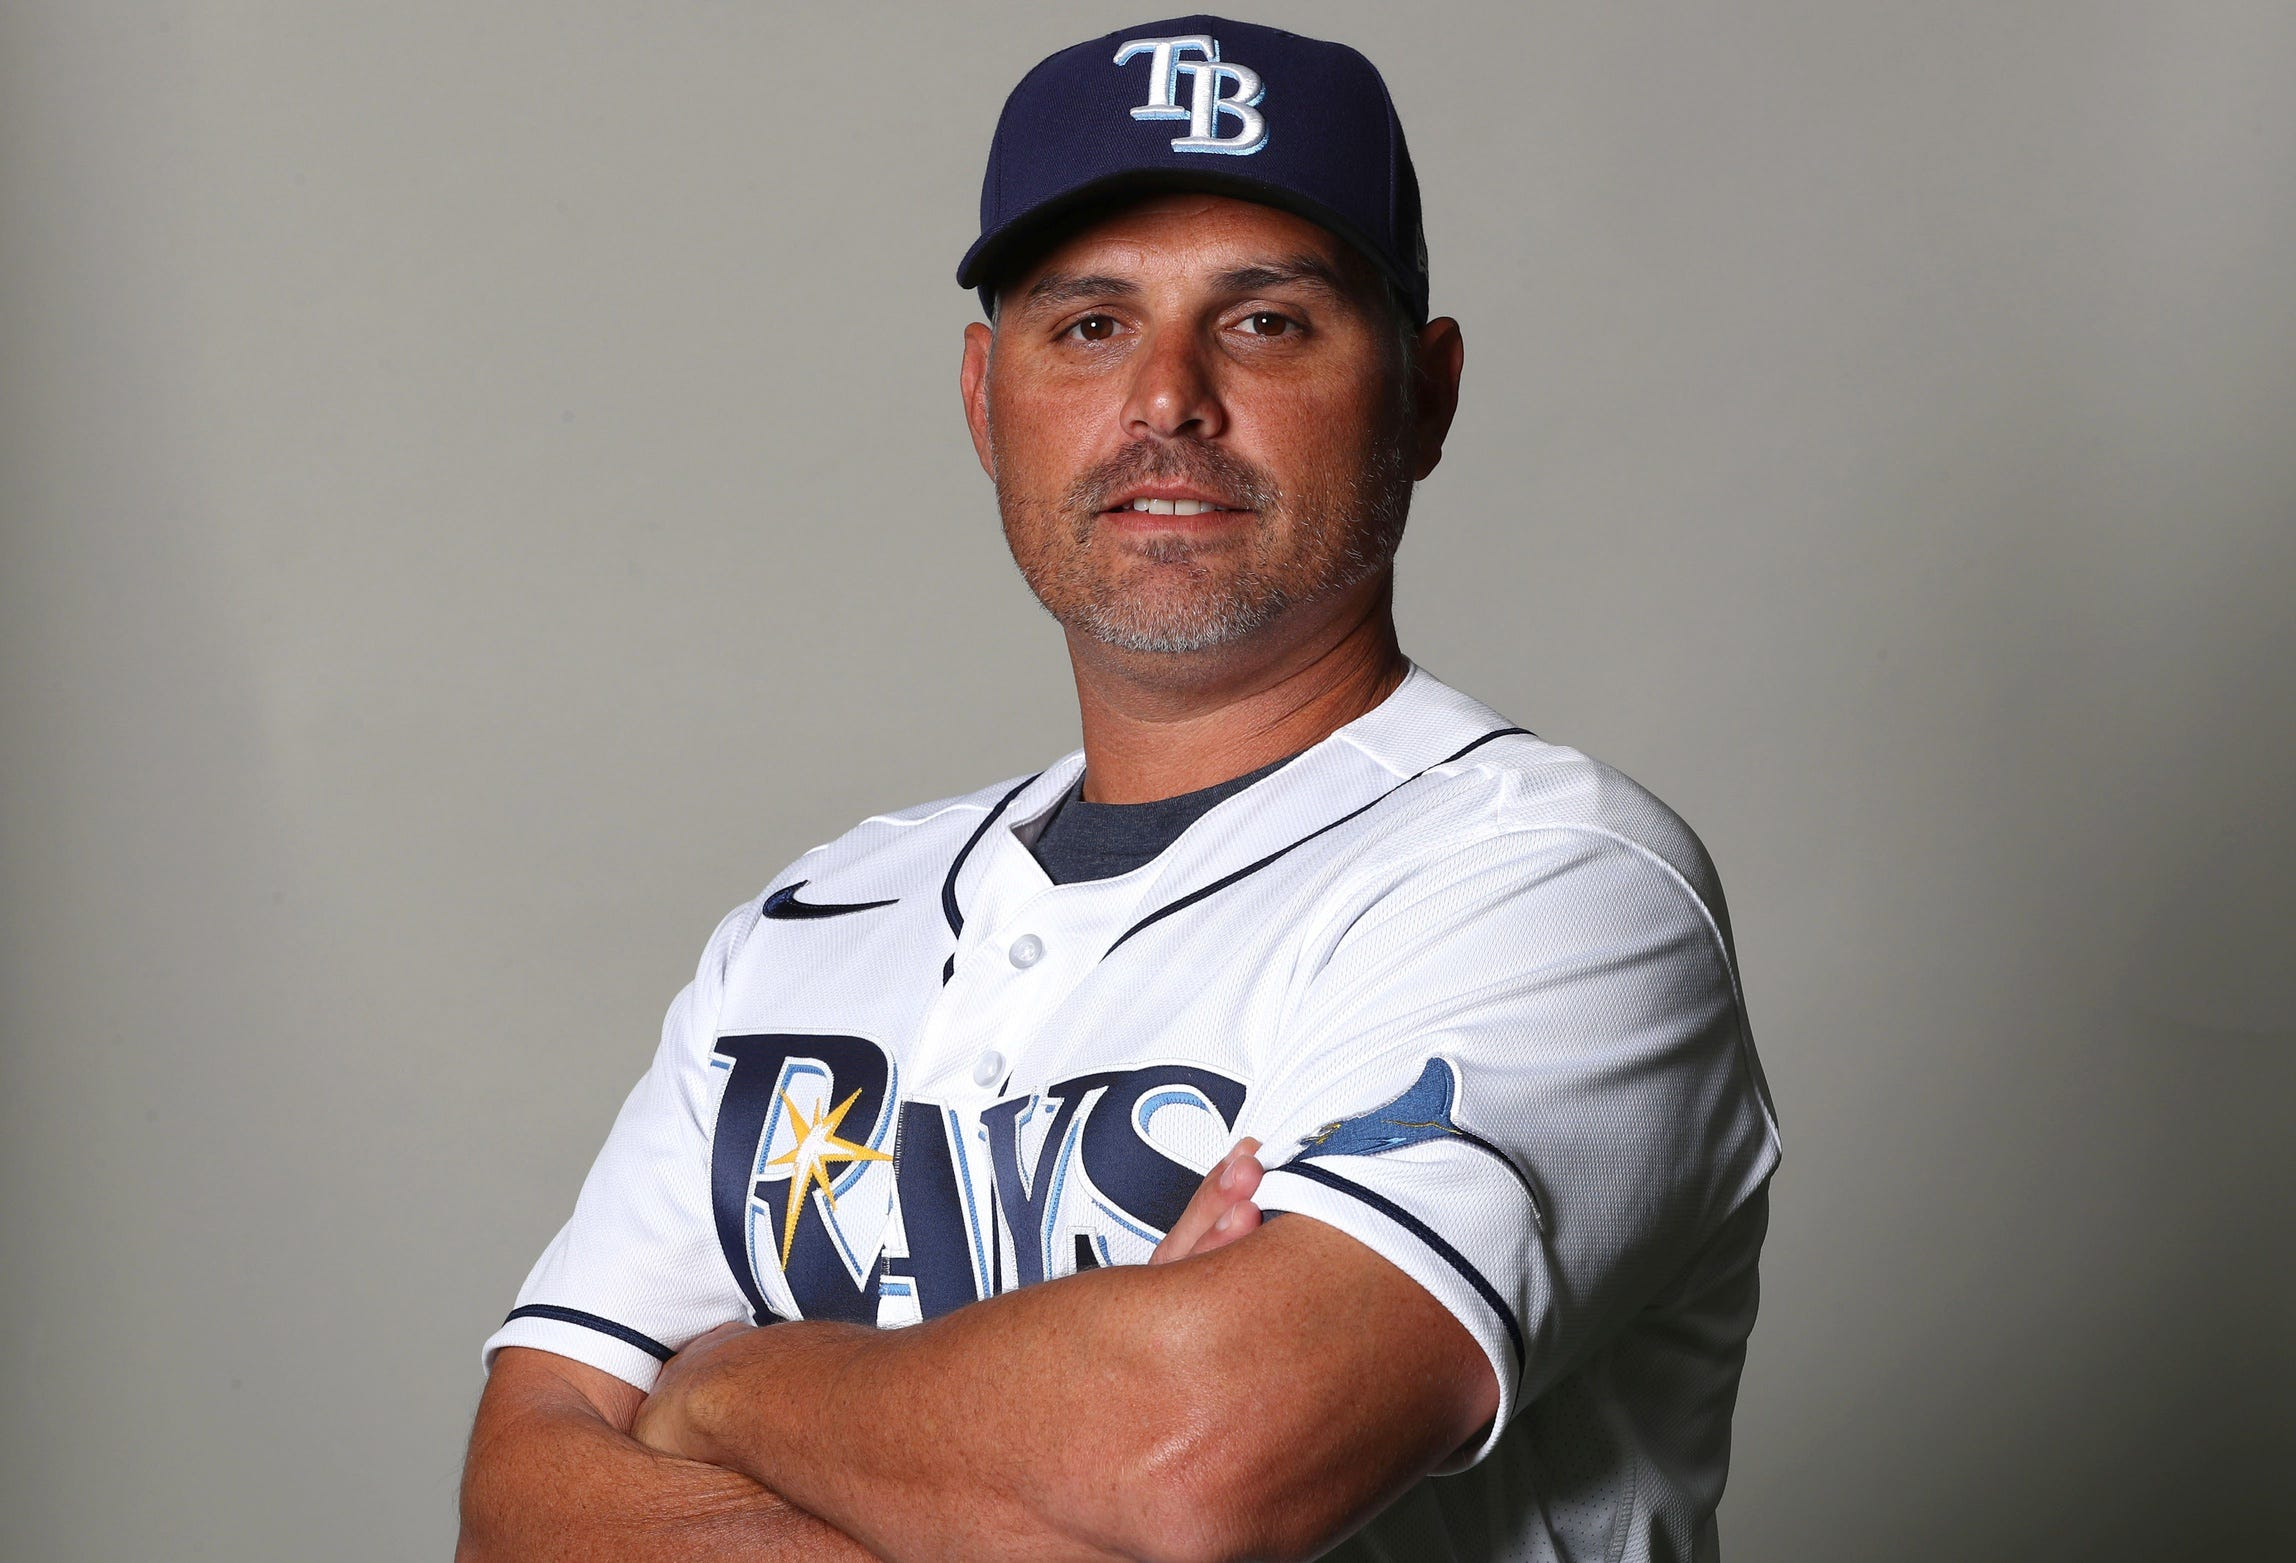 What can we learn from Kevin Cash and the Rays? A GM weighs in.